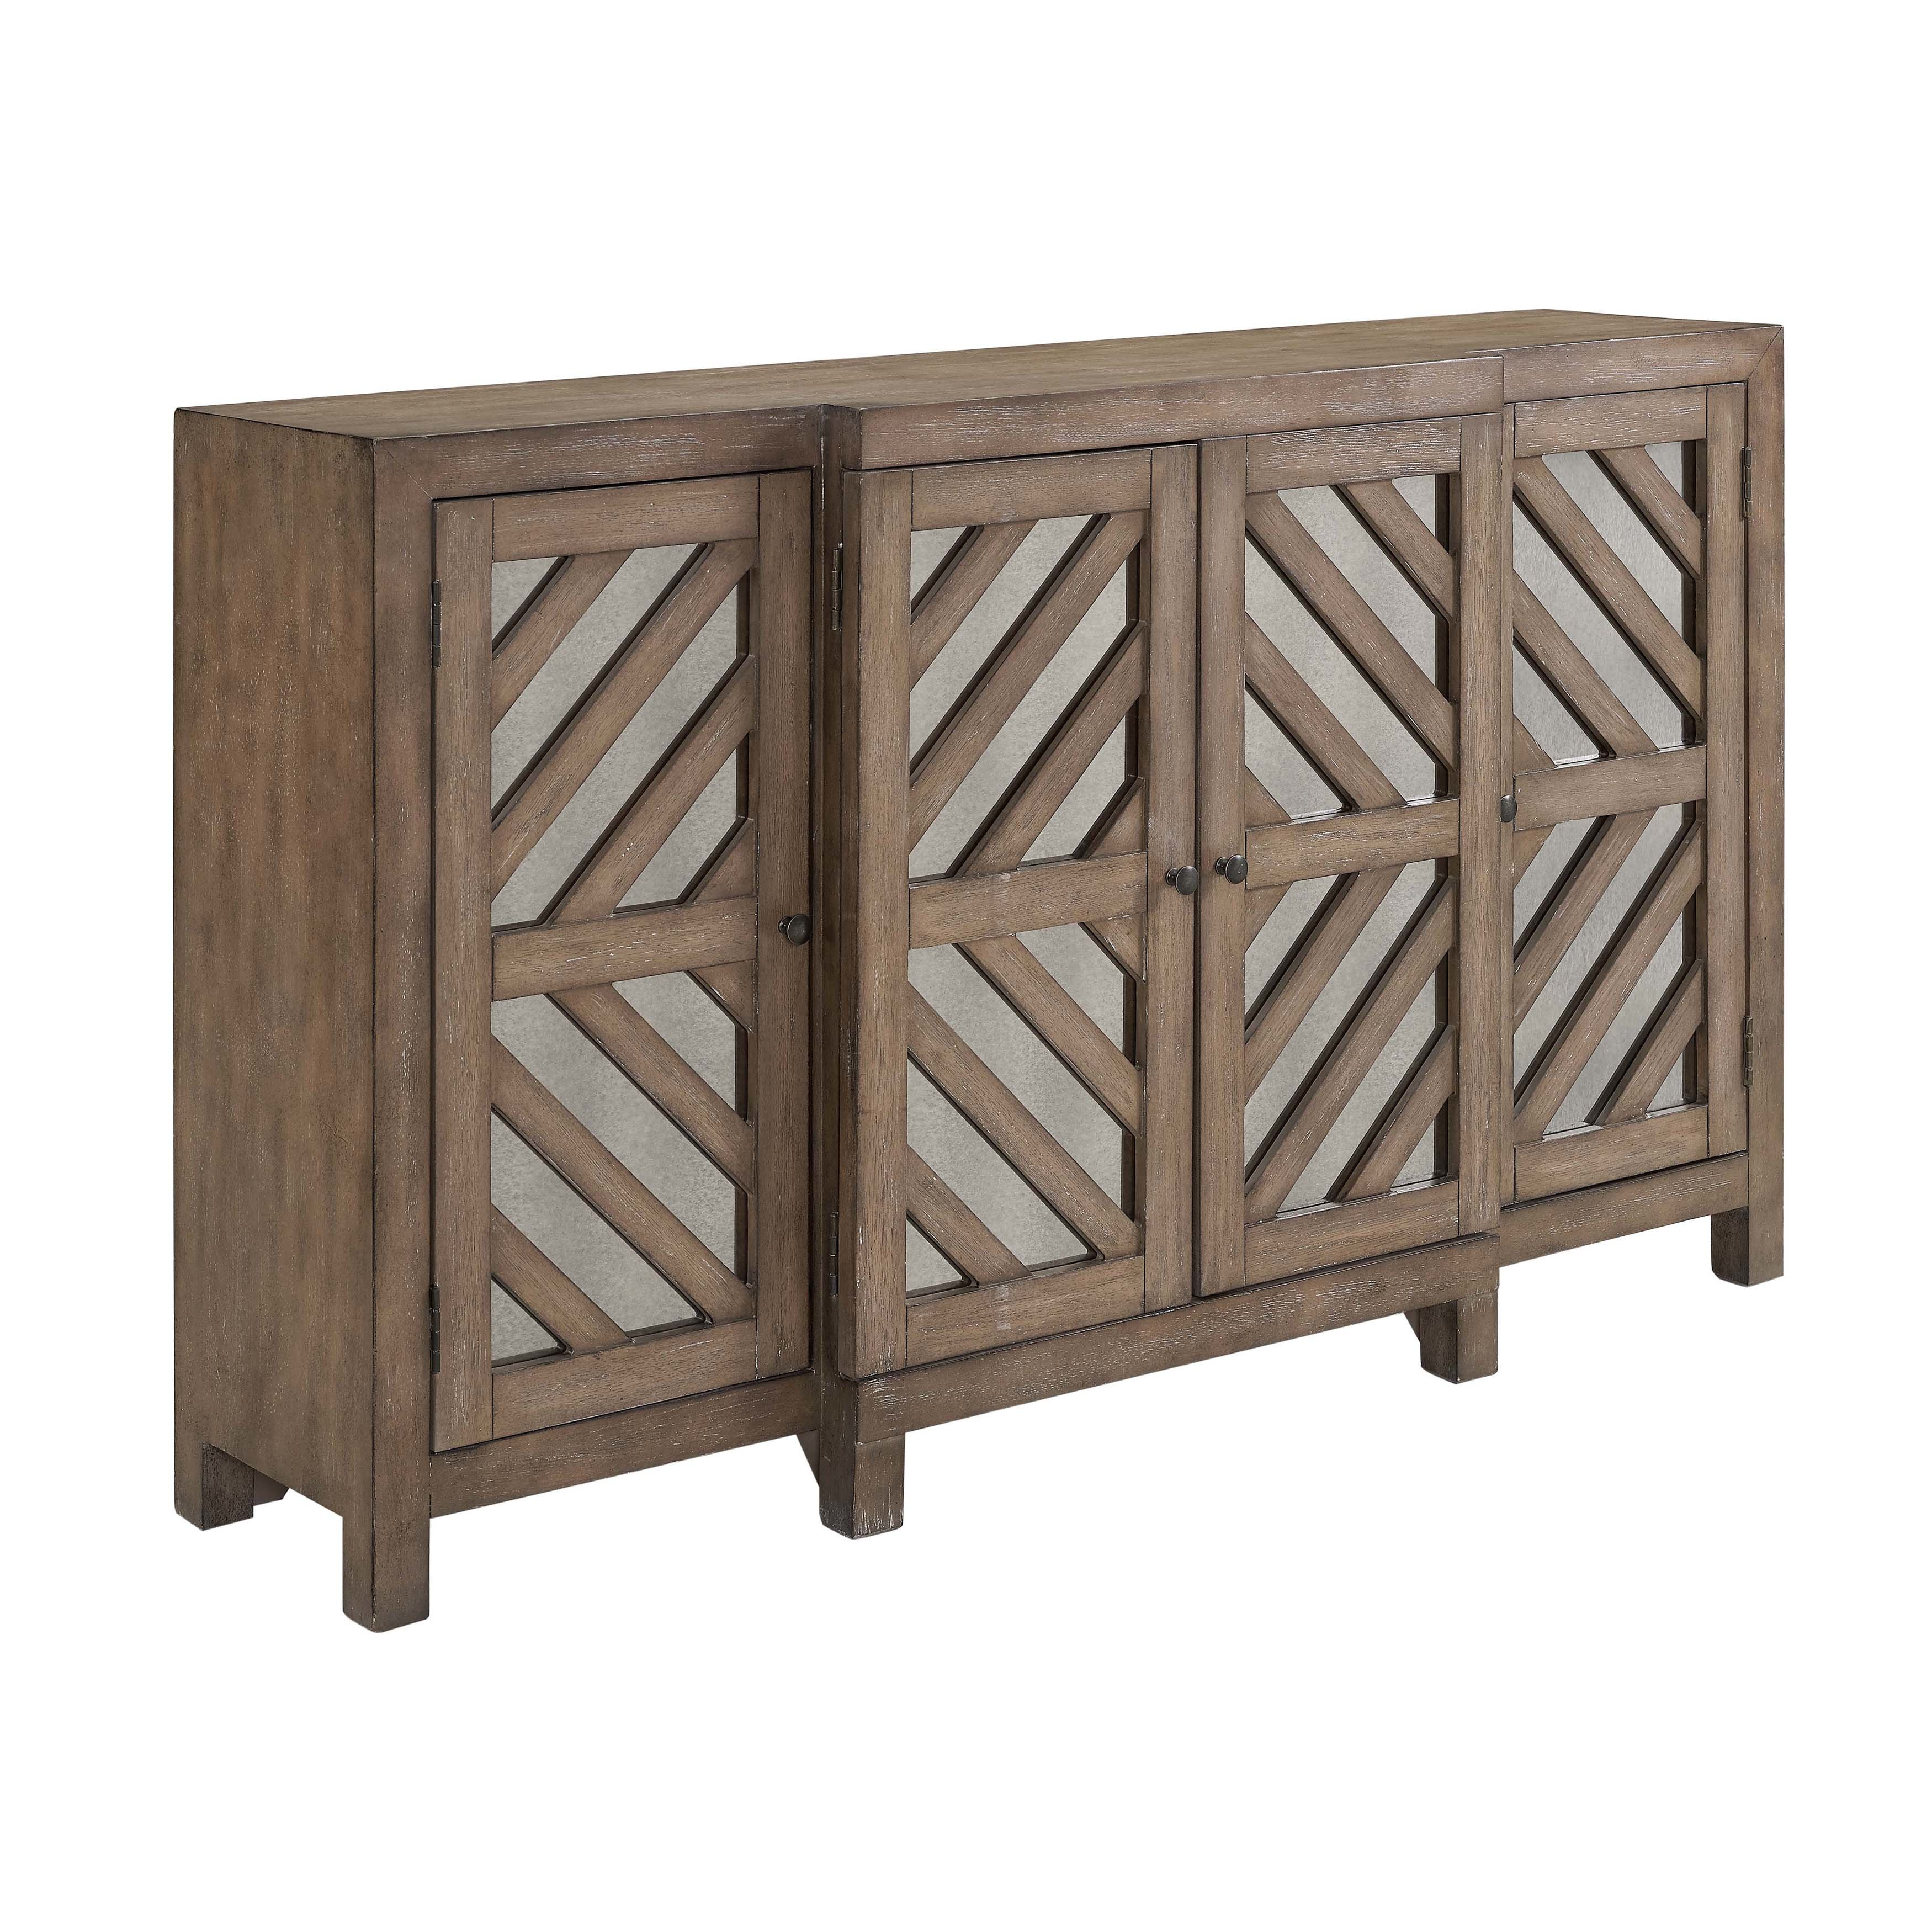 Modern & Contemporary Deny Credenza | Allmodern For Lainey Credenzas (View 20 of 30)